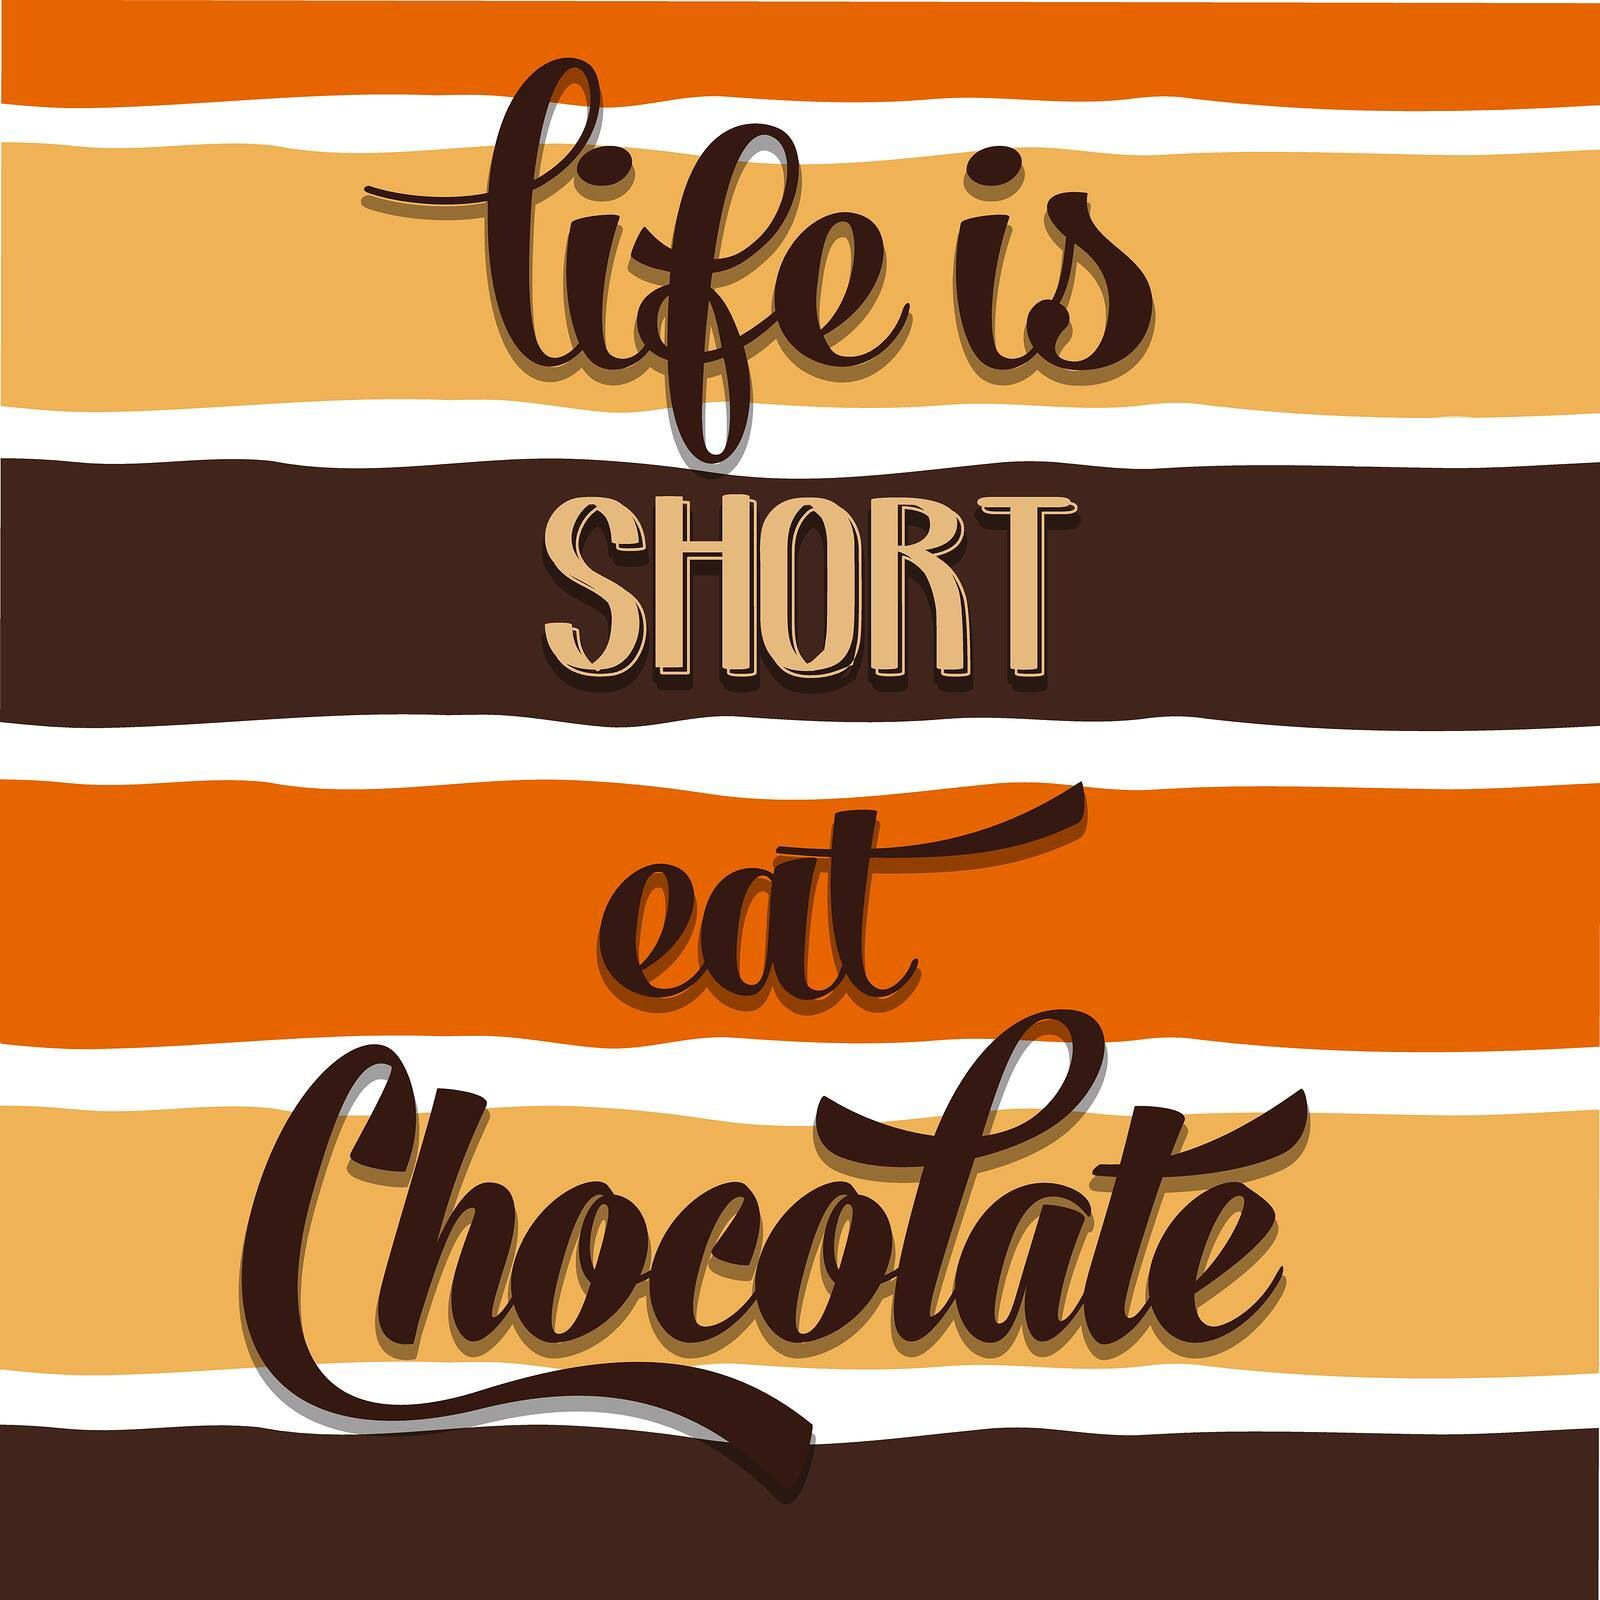 Life is short, eat chocolate. Chocolate quotes, Mexican